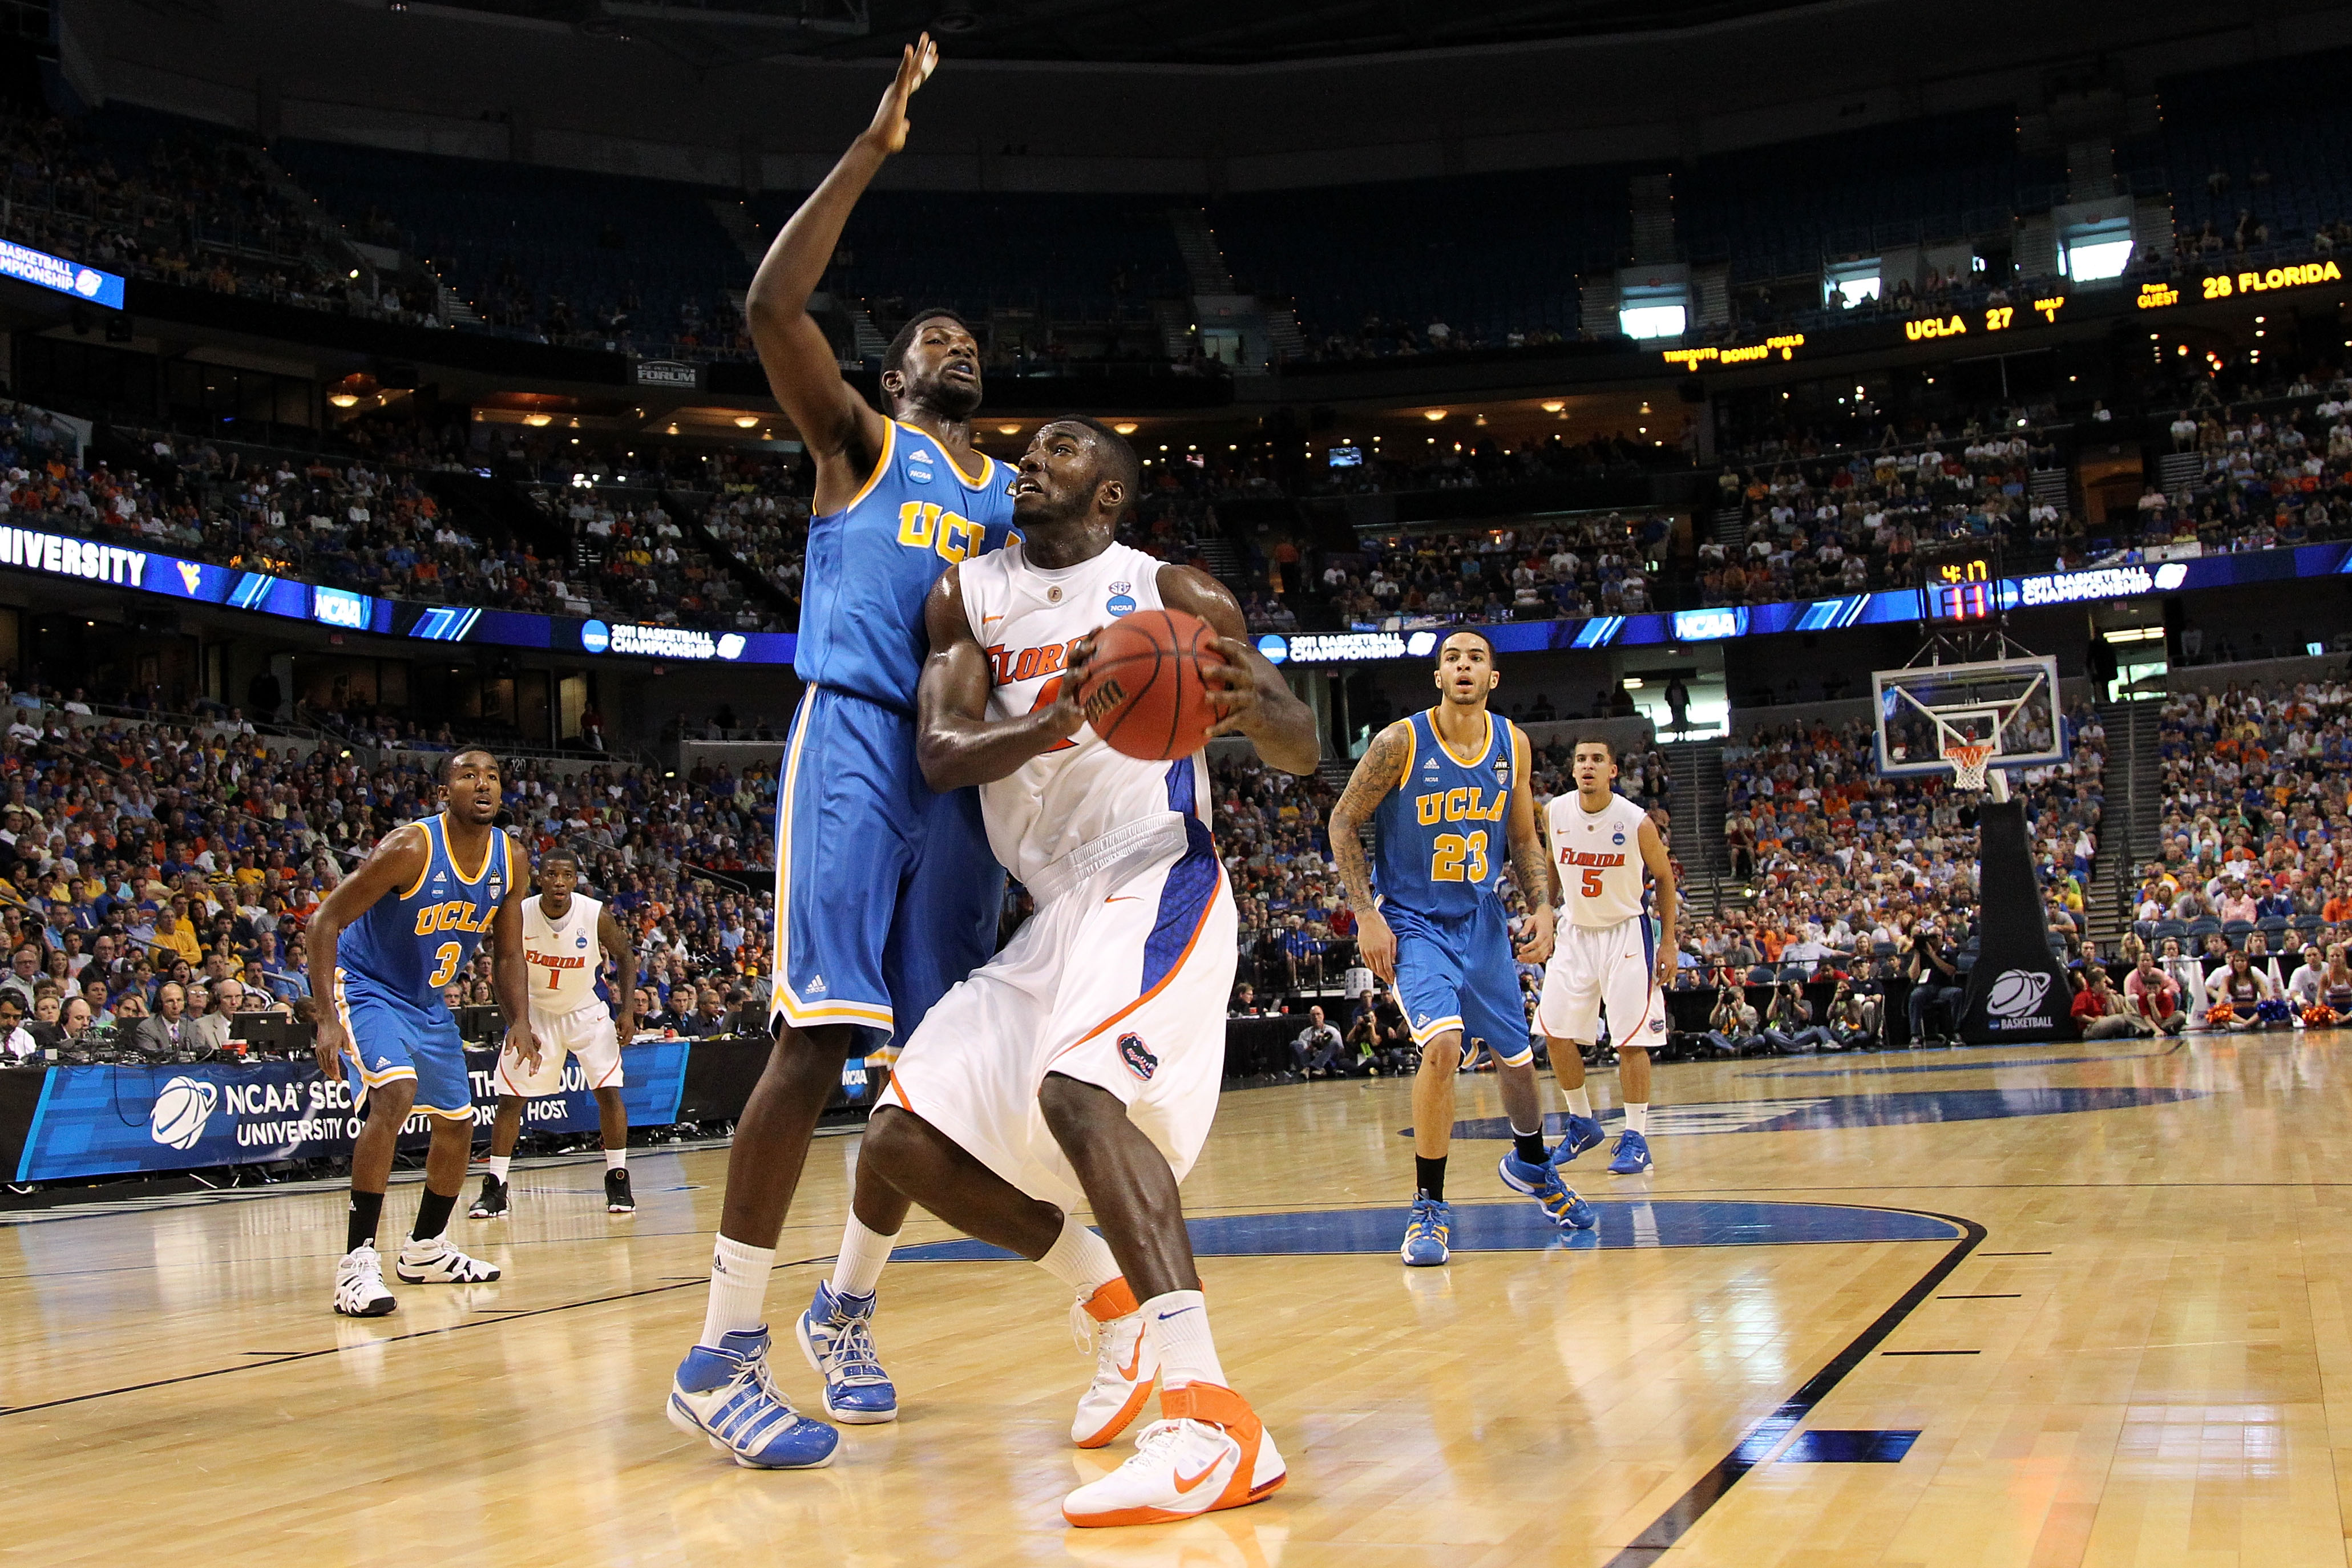 TAMPA, FL - MARCH 19:  Patric Young #4 of the Florida Gators drives against Anthony Stover #0 of the UCLA Bruins during the third round of the 2011 NCAA men's basketball tournament at St. Pete Times Forum on March 19, 2011 in Tampa, Florida. Florida won 7